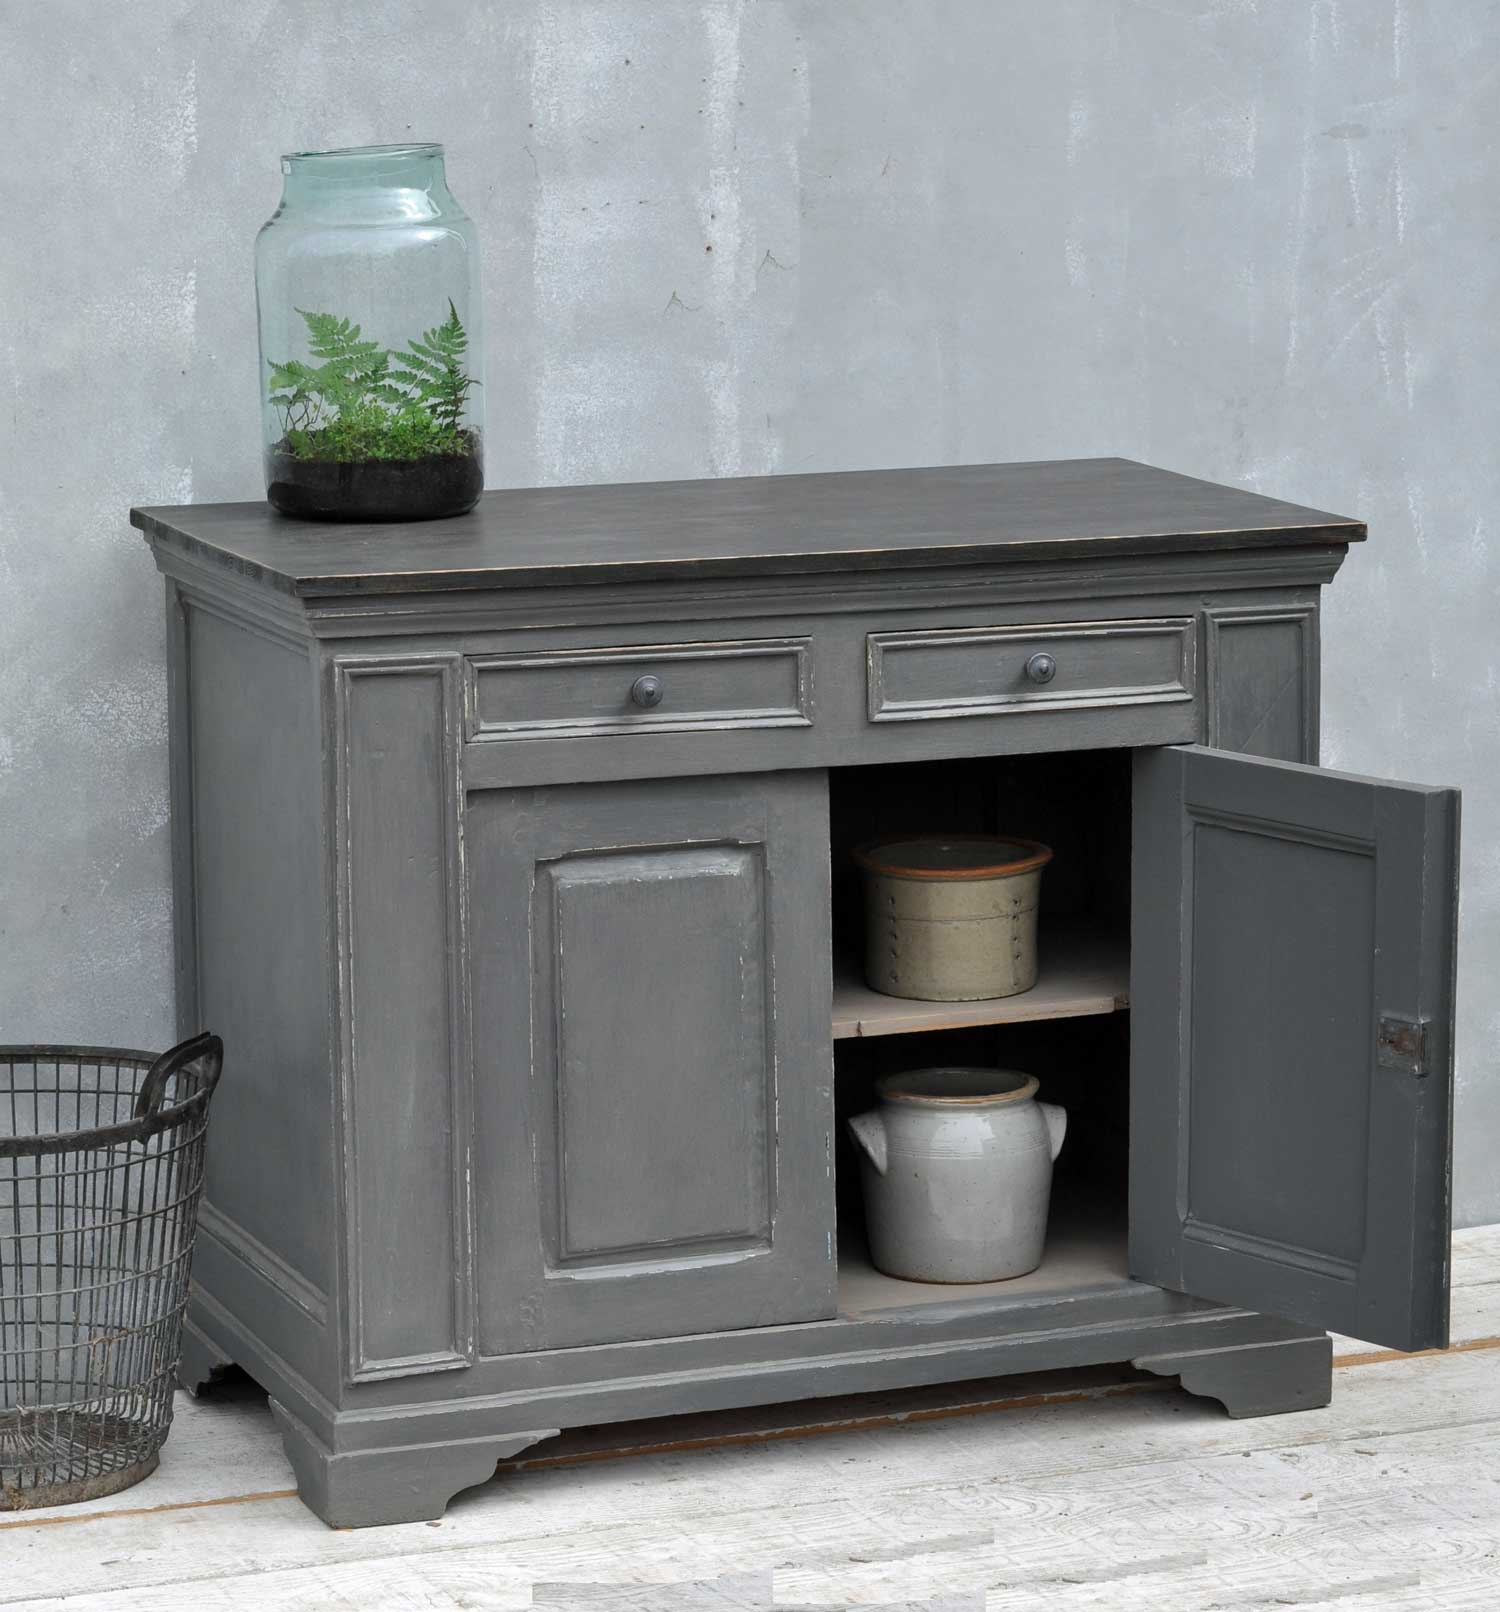 Grey Hand Painted Cabinet